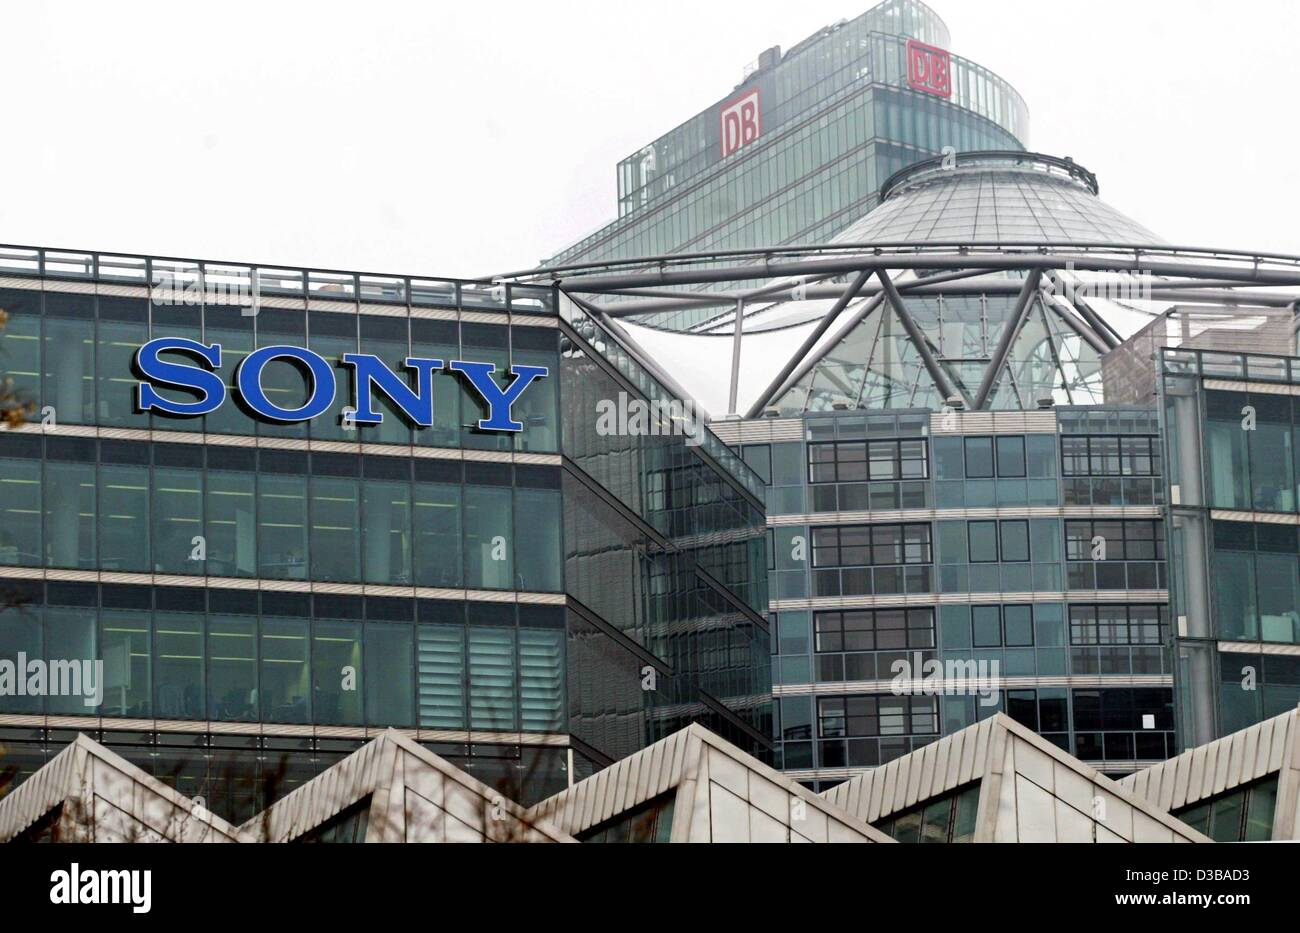 (dpa) - A view of the SONY European headquarters at the Potsdamer Platz in Berlin, 25 November 2002. Sony on 15 - Stock Image